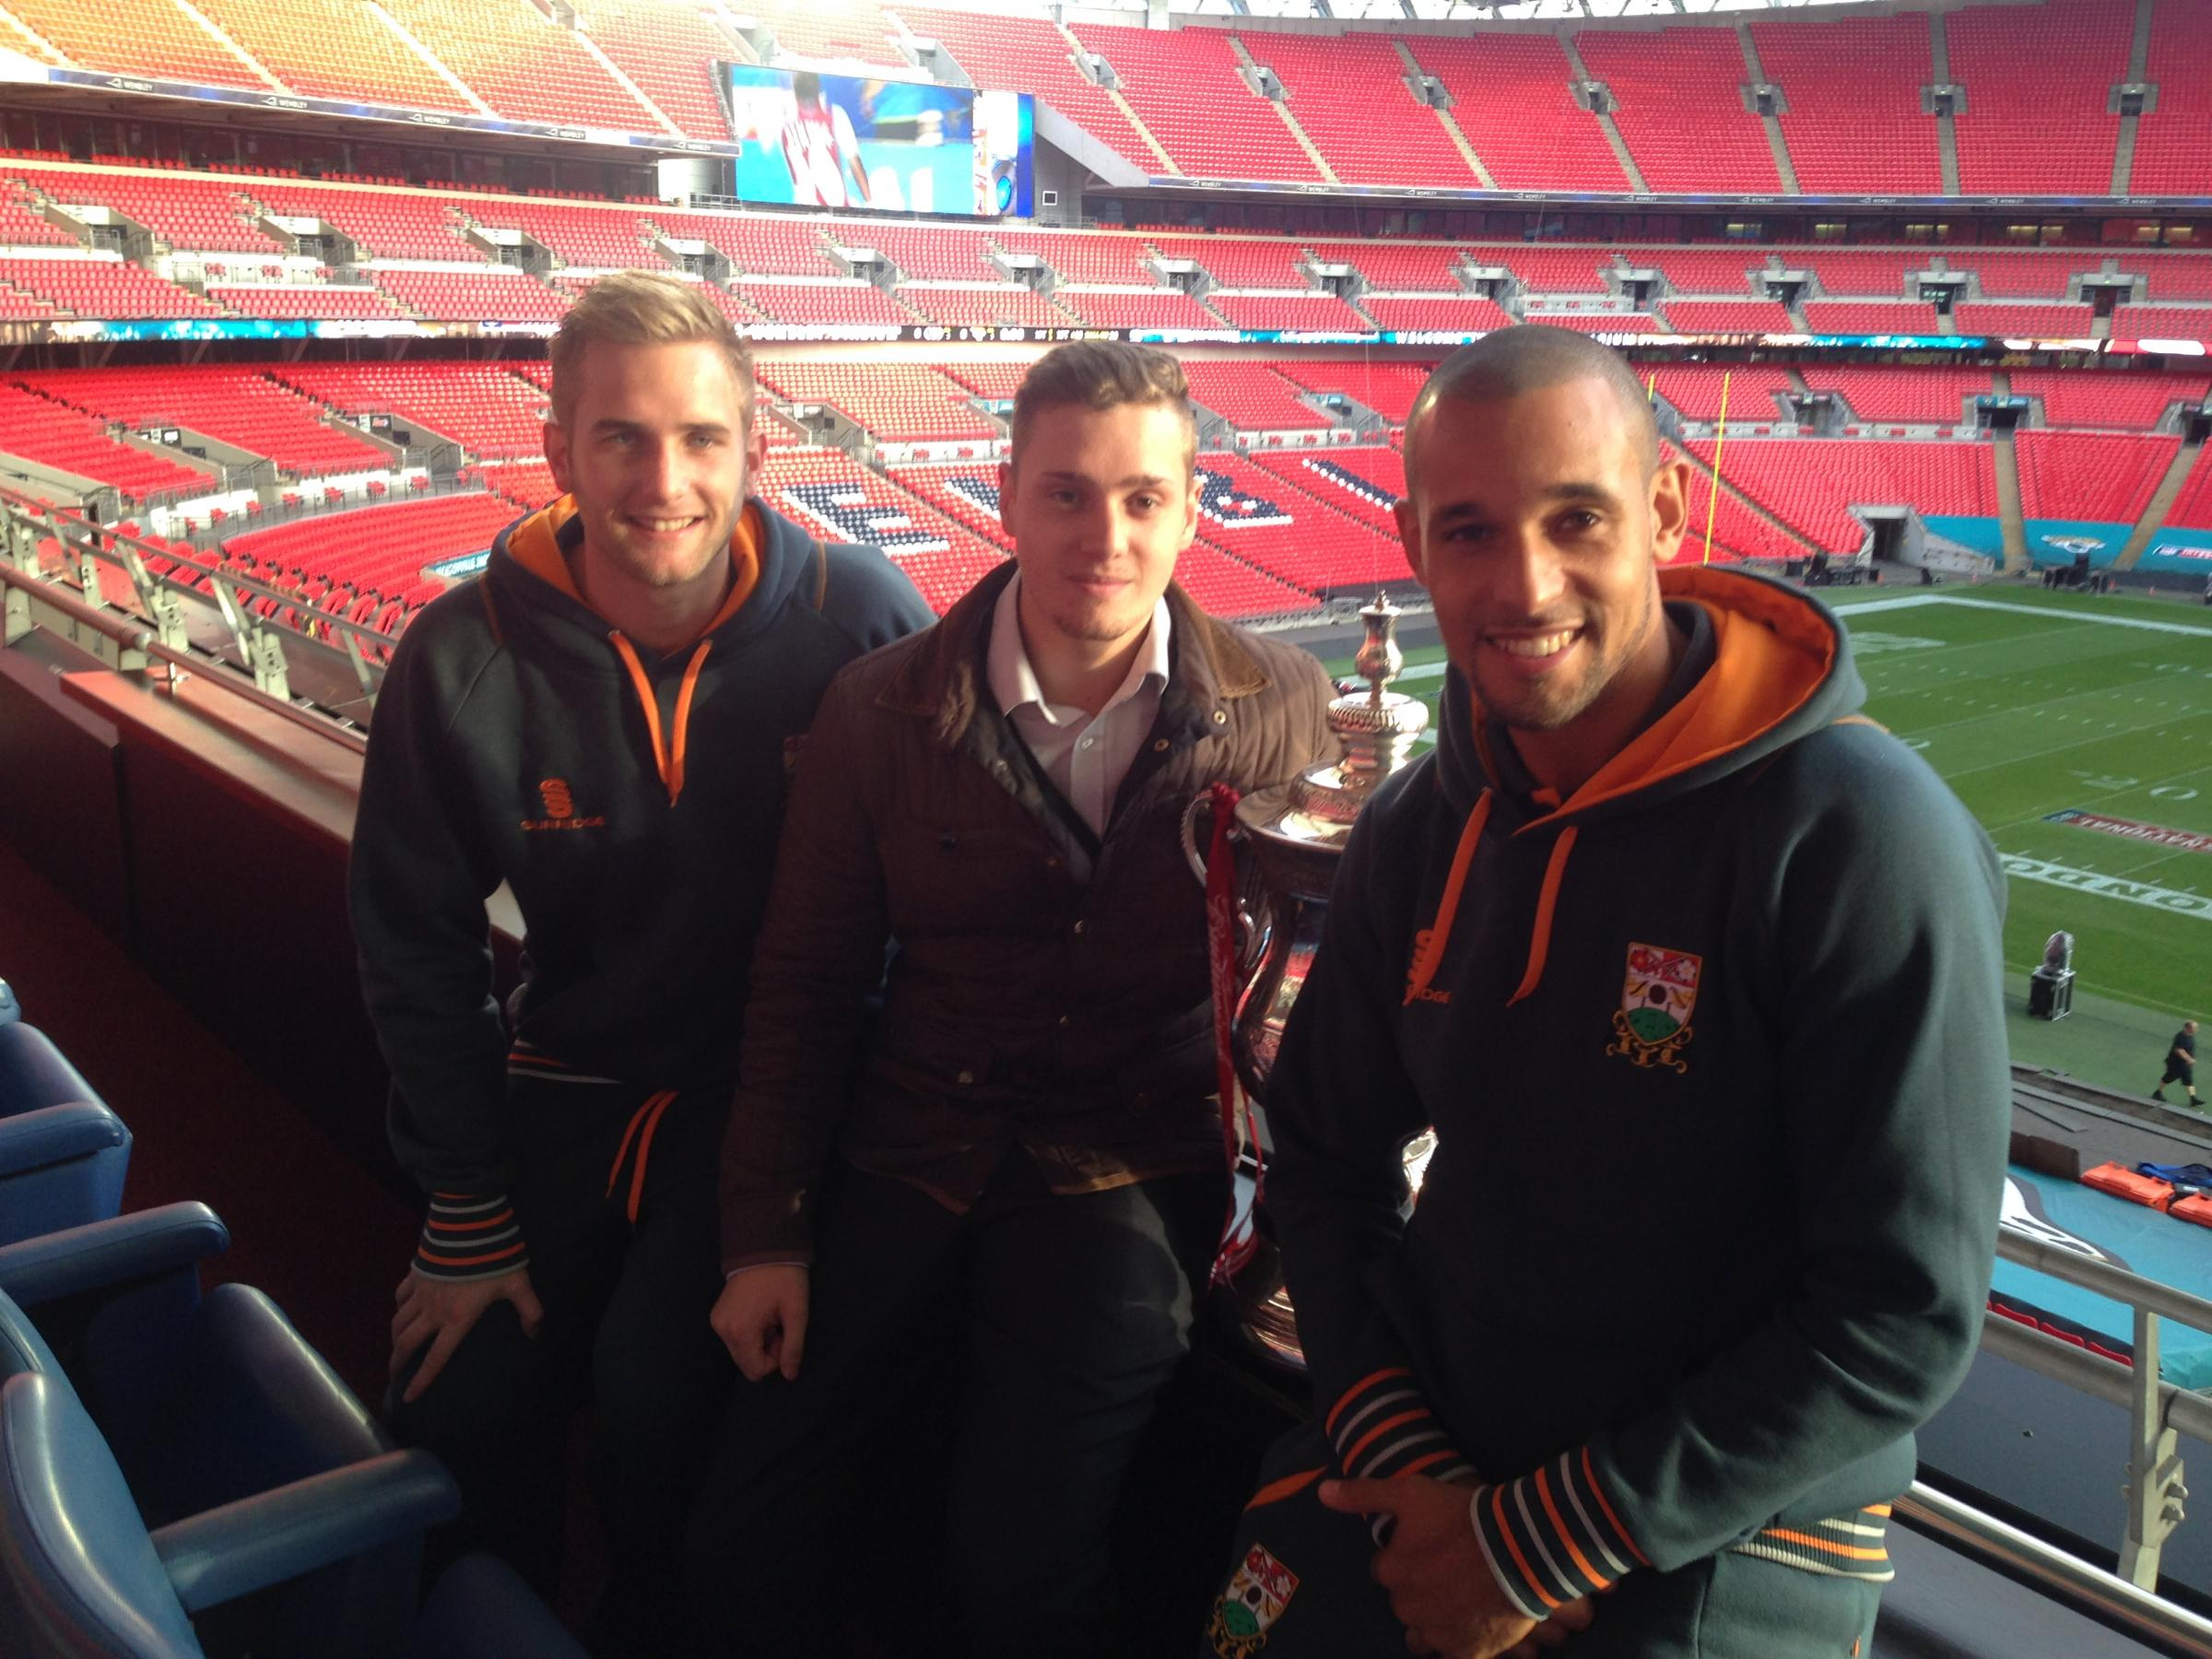 Oscar Chamberlain ( middle) with Barnet duo Nick Jupp and Curtis Weston